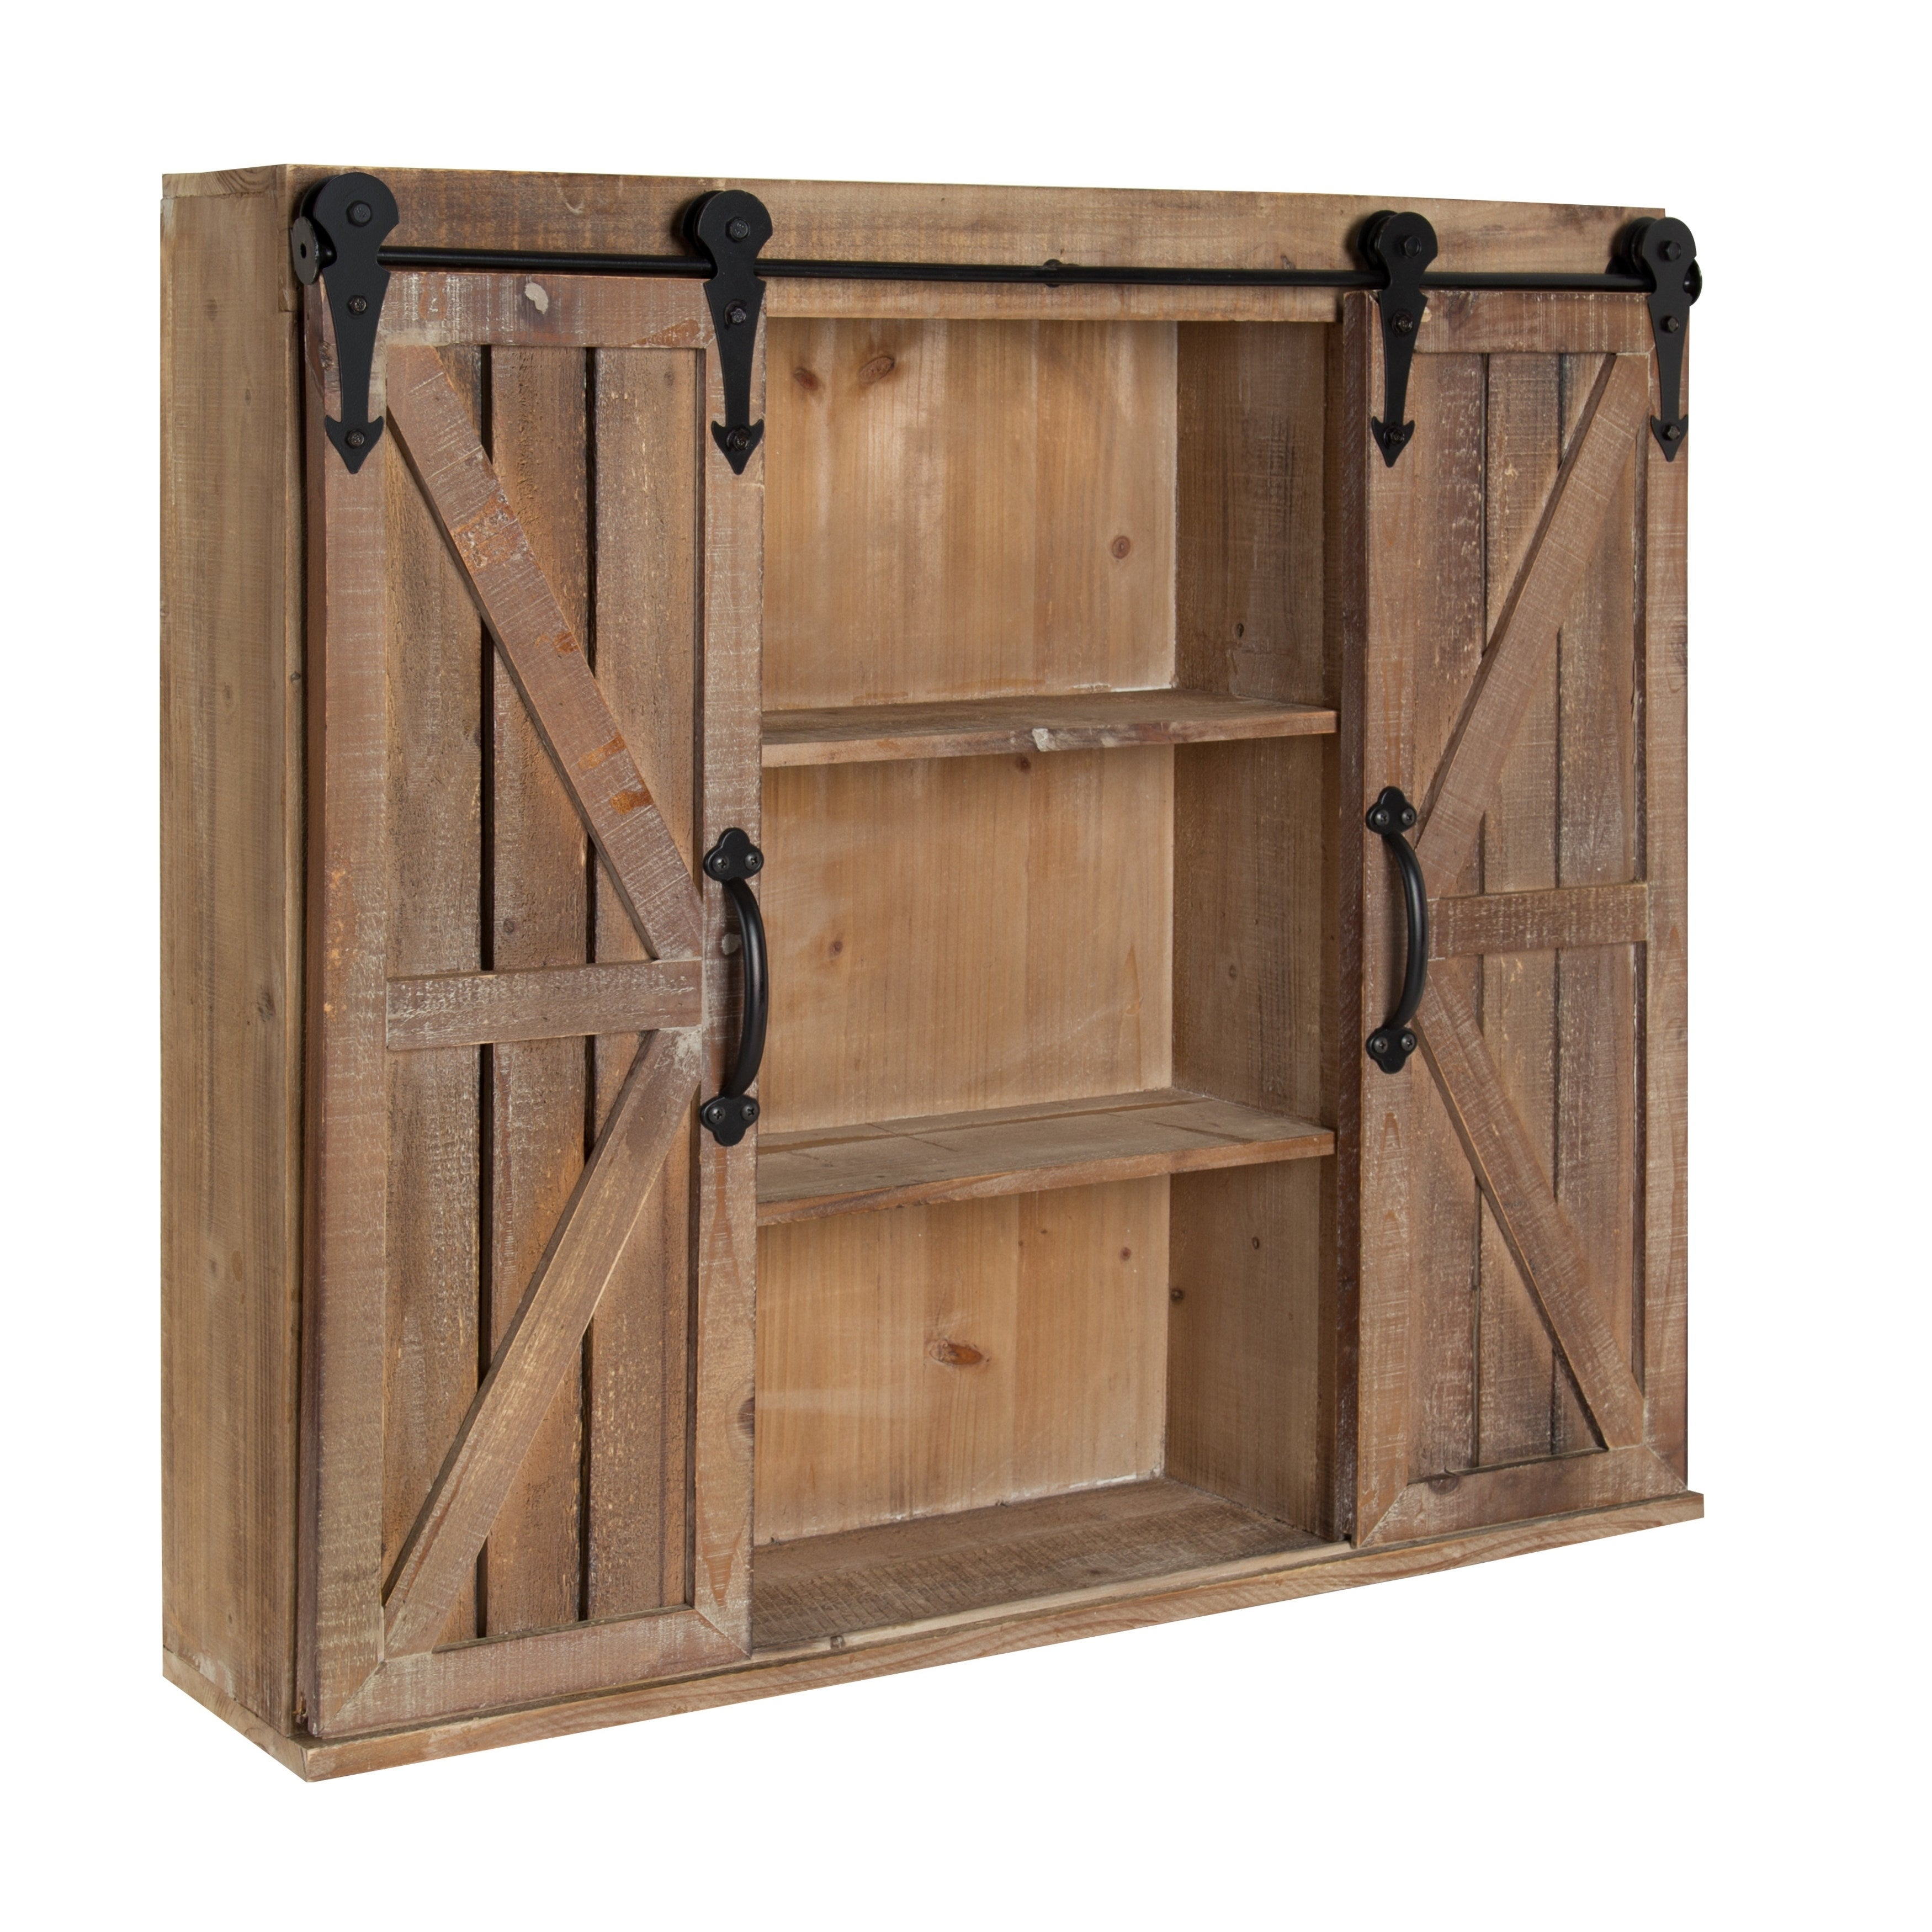 Shop kate and laurel cates rustic wood wall storage cabinet with barn doors free shipping today overstock com 16838745